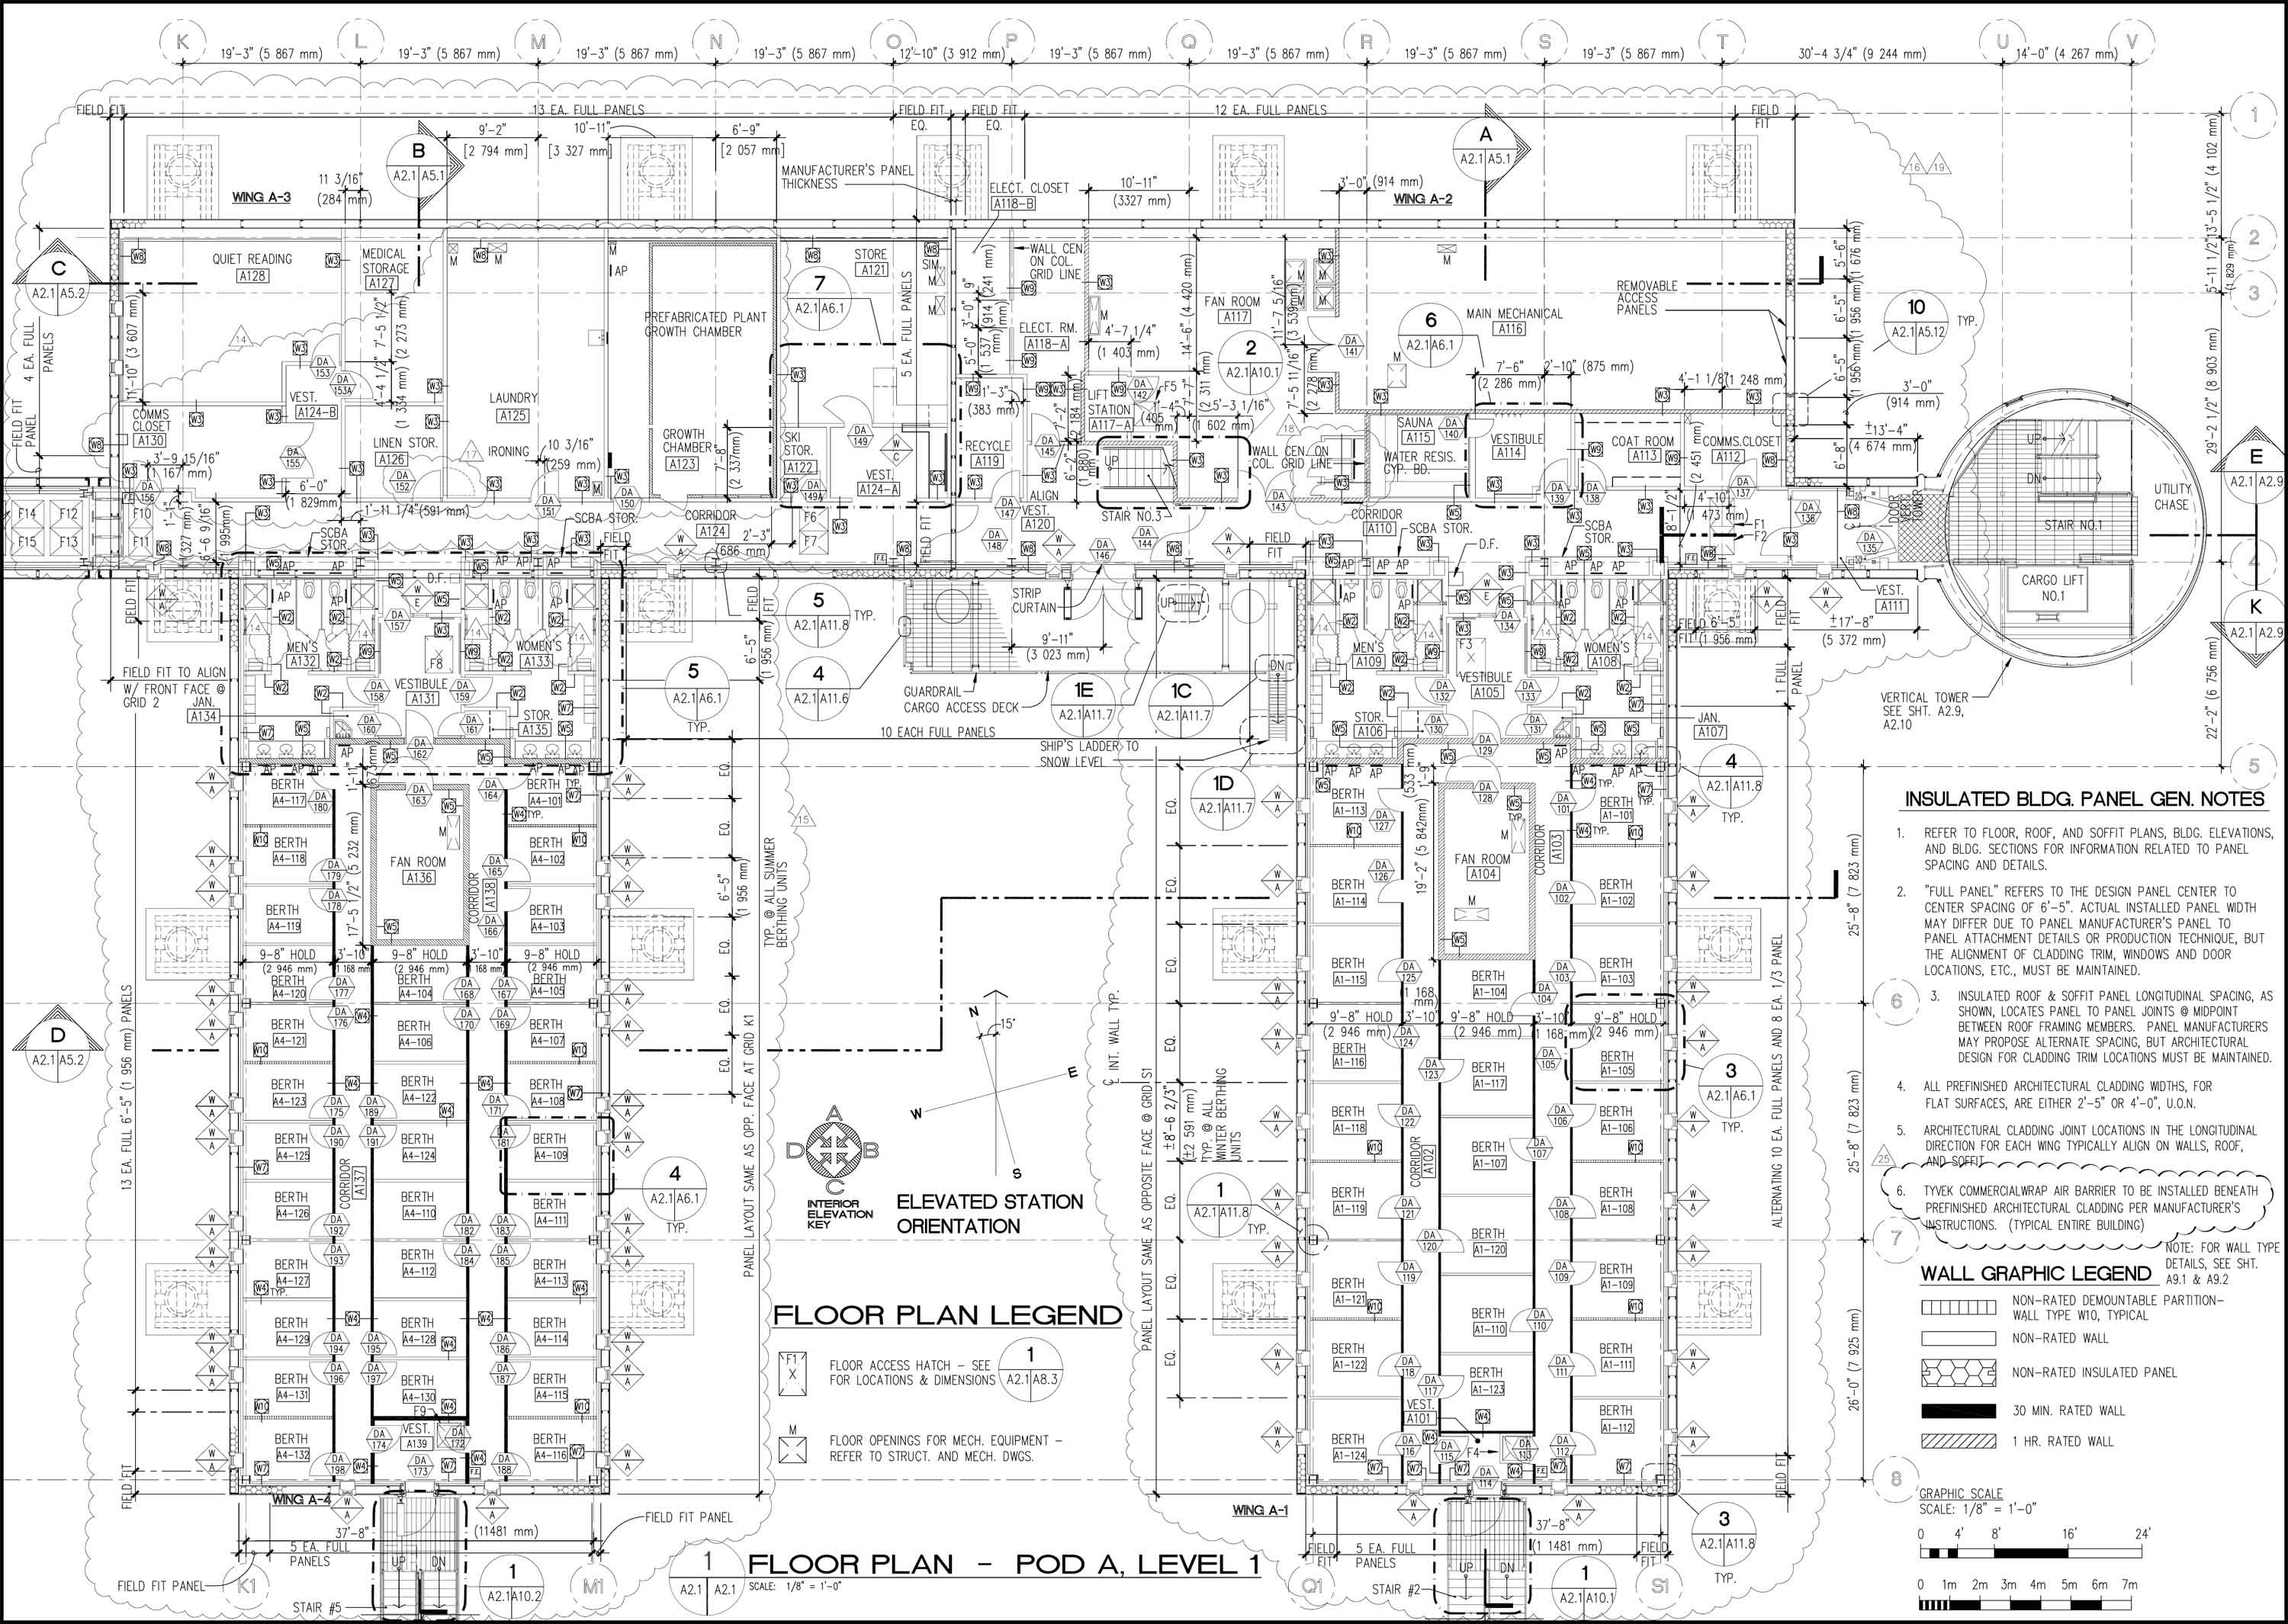 Elevated Station Site Plan And Layout